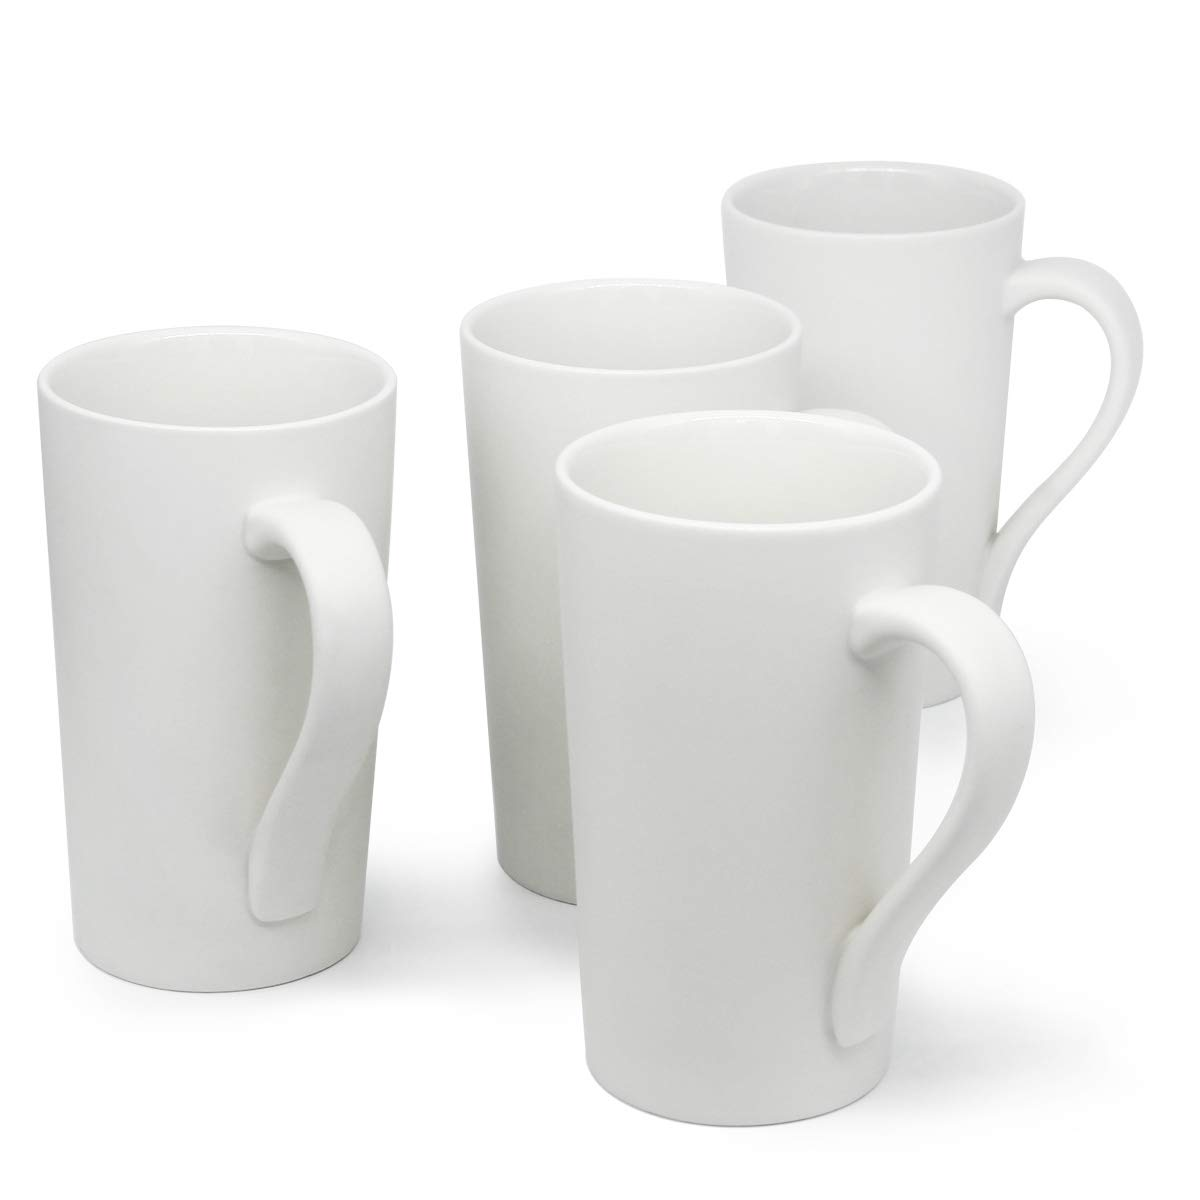 Smilatte M007 Plain Tall Ceramic Cup with Handle for Dad Men 20 Ounce Large Coffee Mugs Set of 2 White